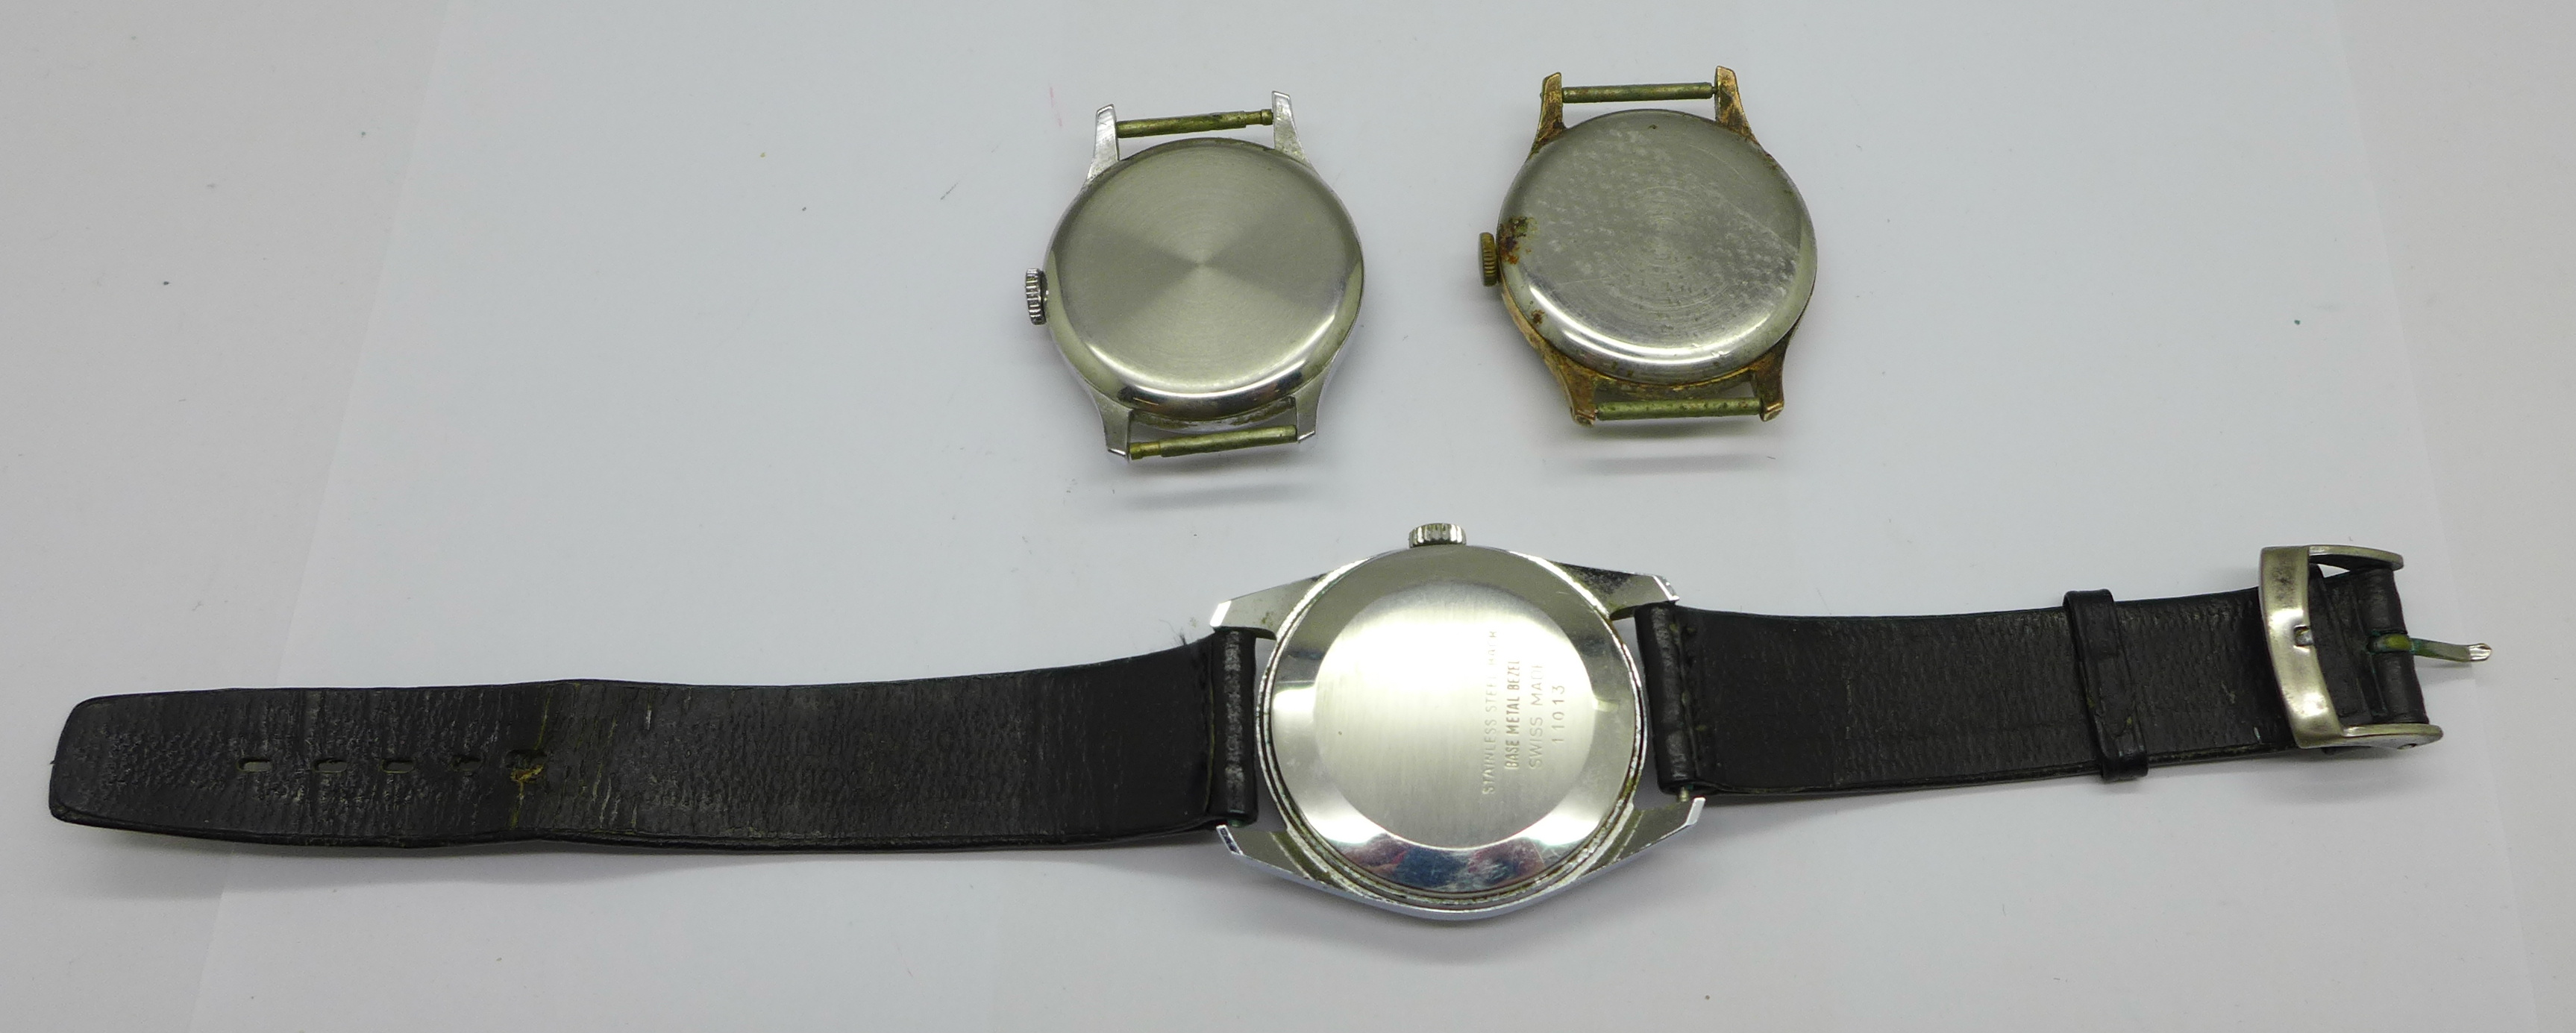 A Smiths Astral, Smiths Astrolon and one other Smiths wristwatch with De Luxe movement - Image 4 of 5